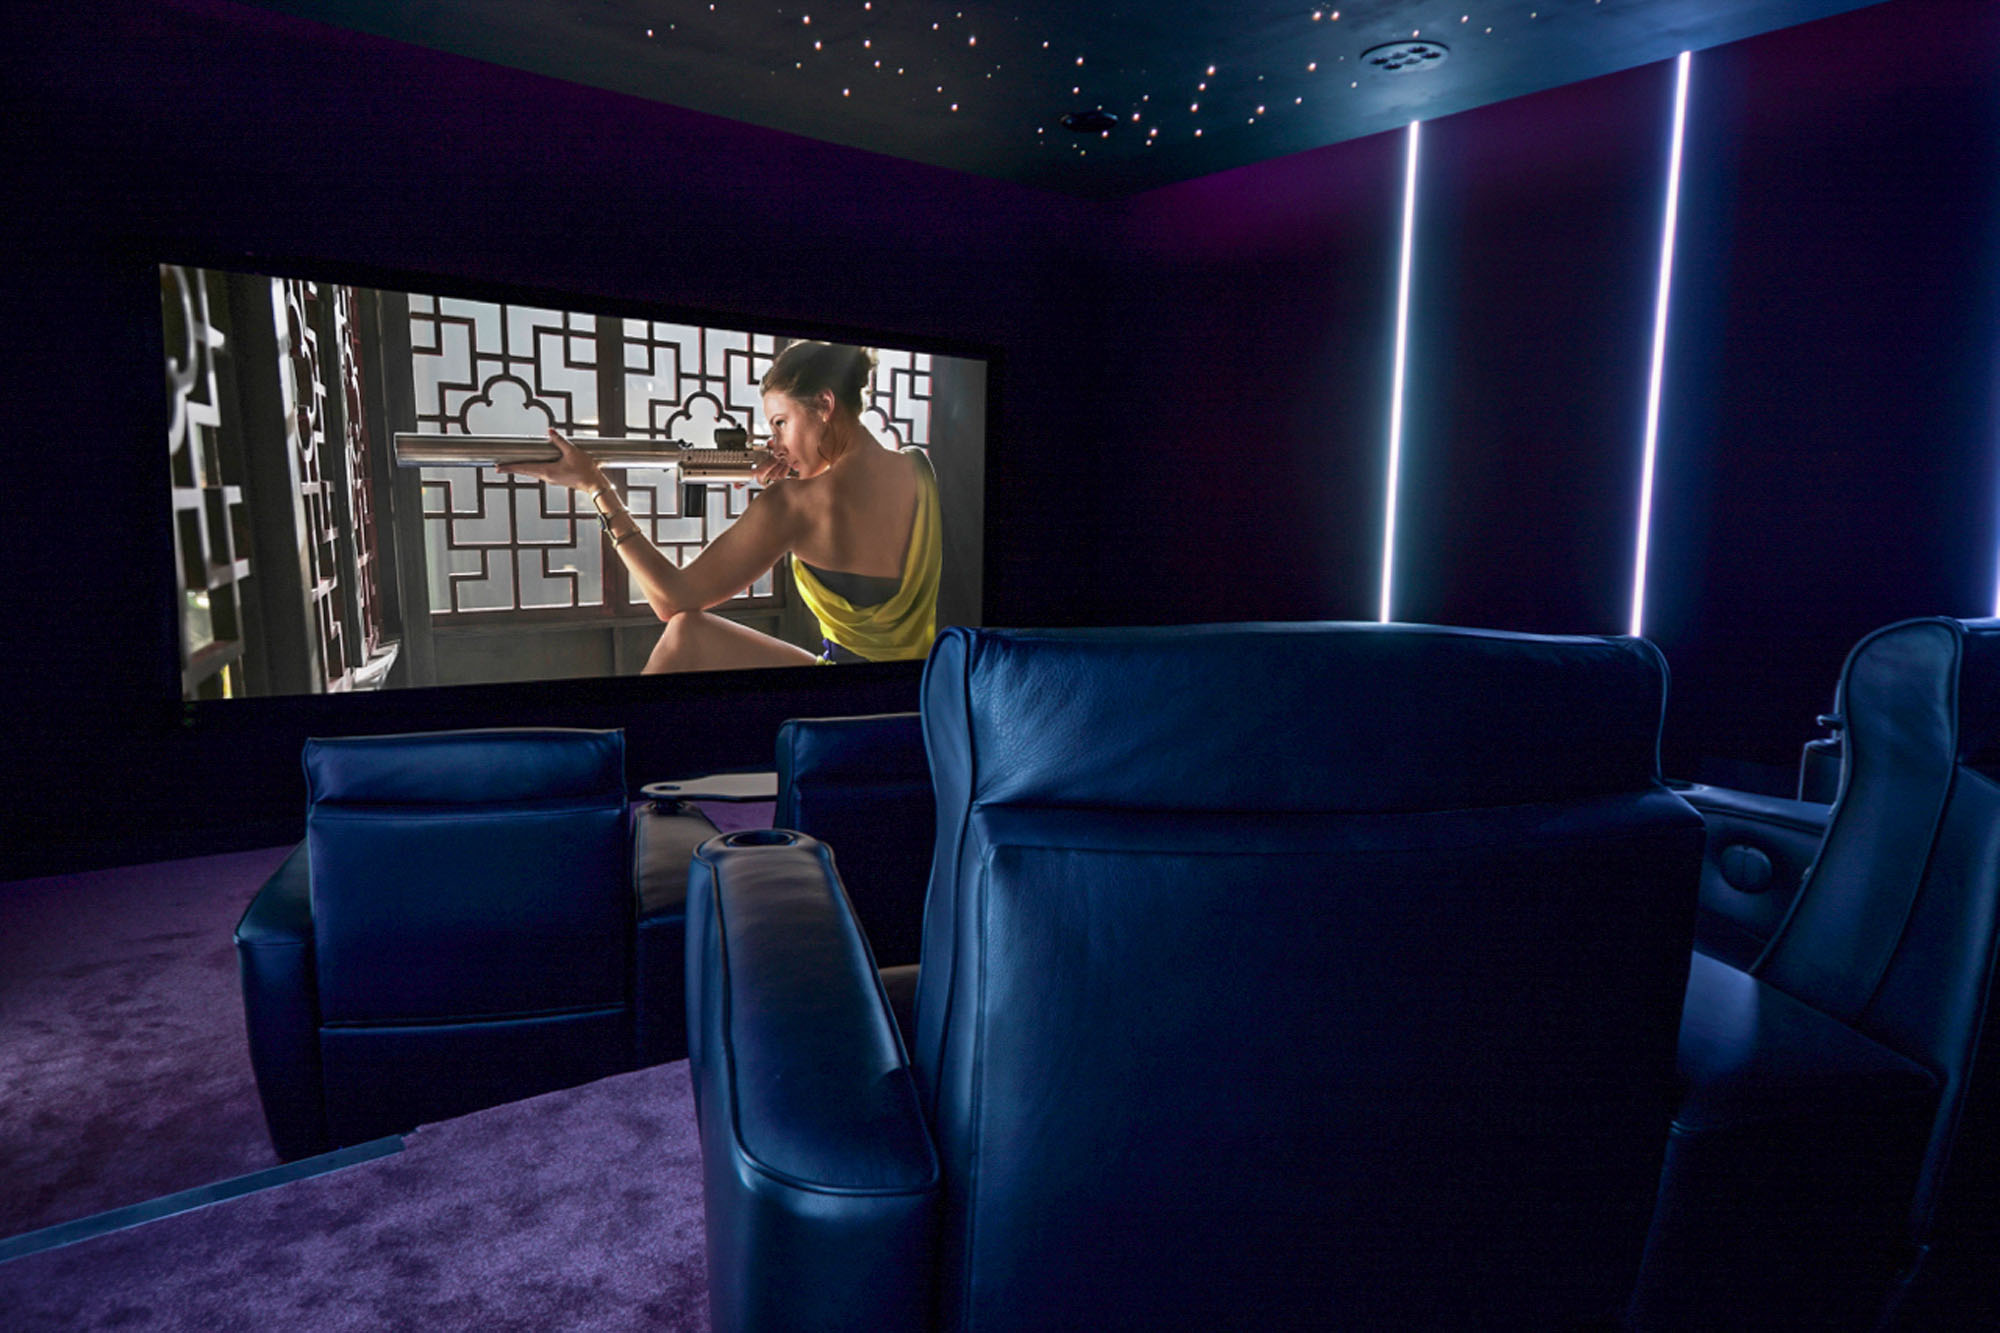 Home_Cinema_by_Futurehome_4.jpg